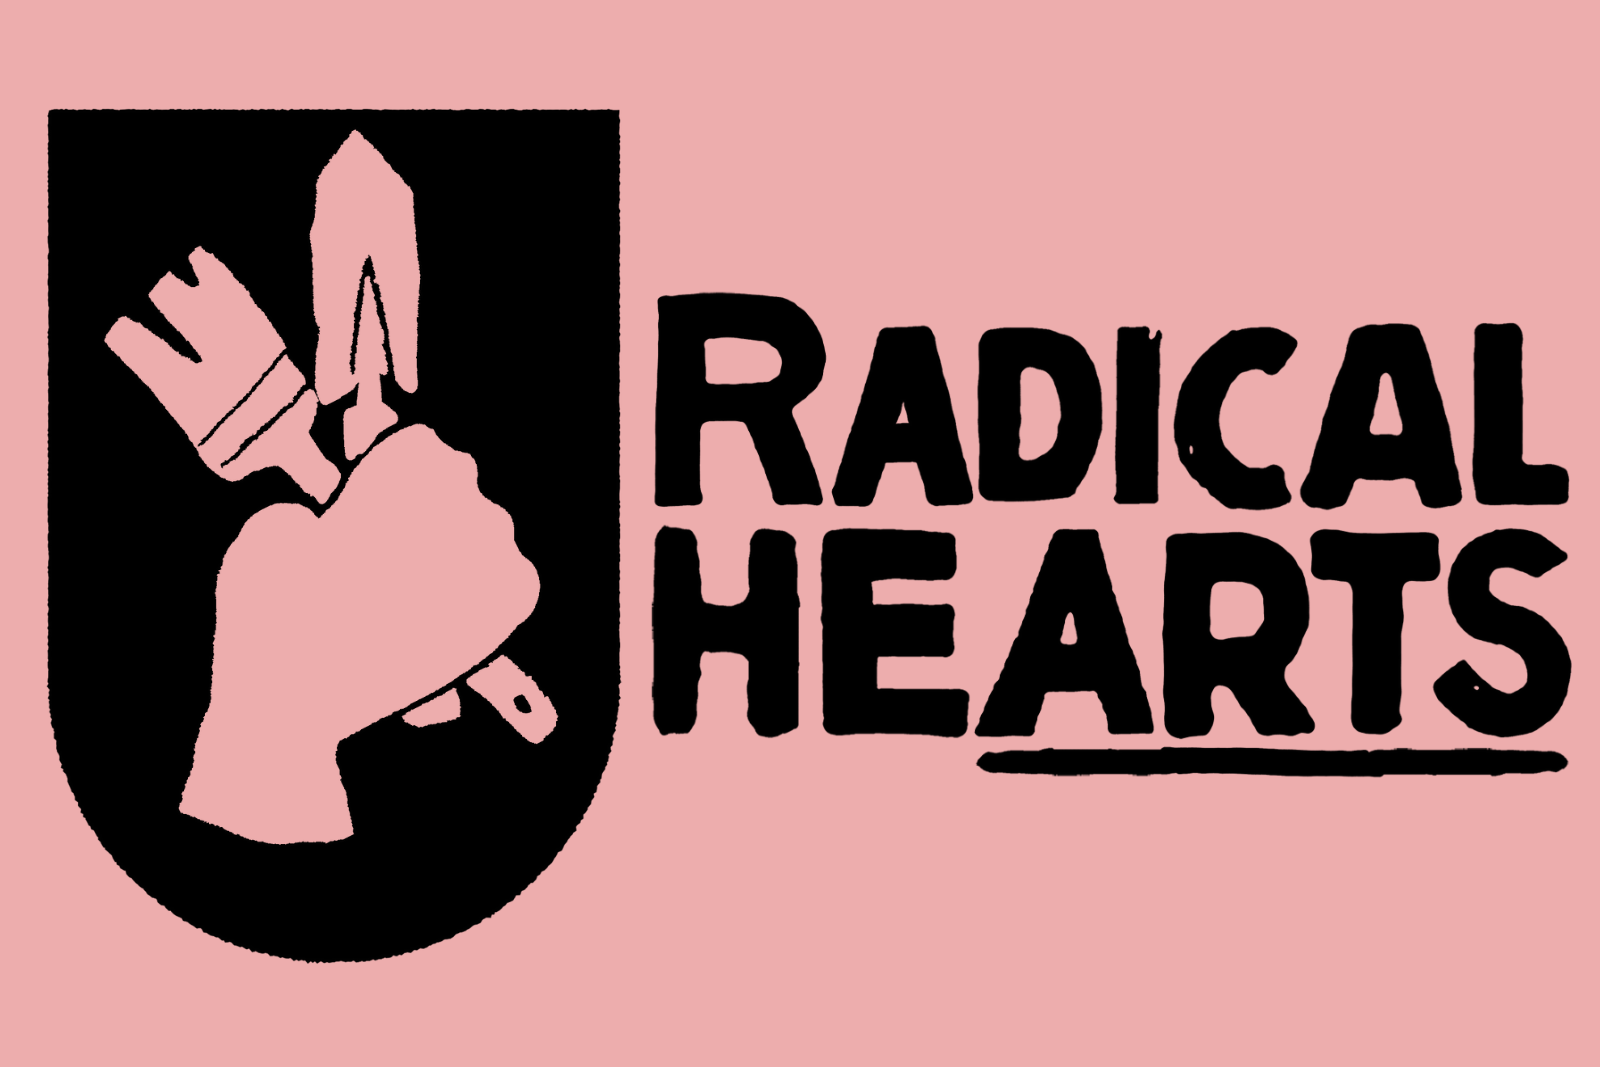 Radical hearts logo: A monochromatic fist holding a gardening spade and artist's brush next to the bold words RADICAL HEARTS (homepage)